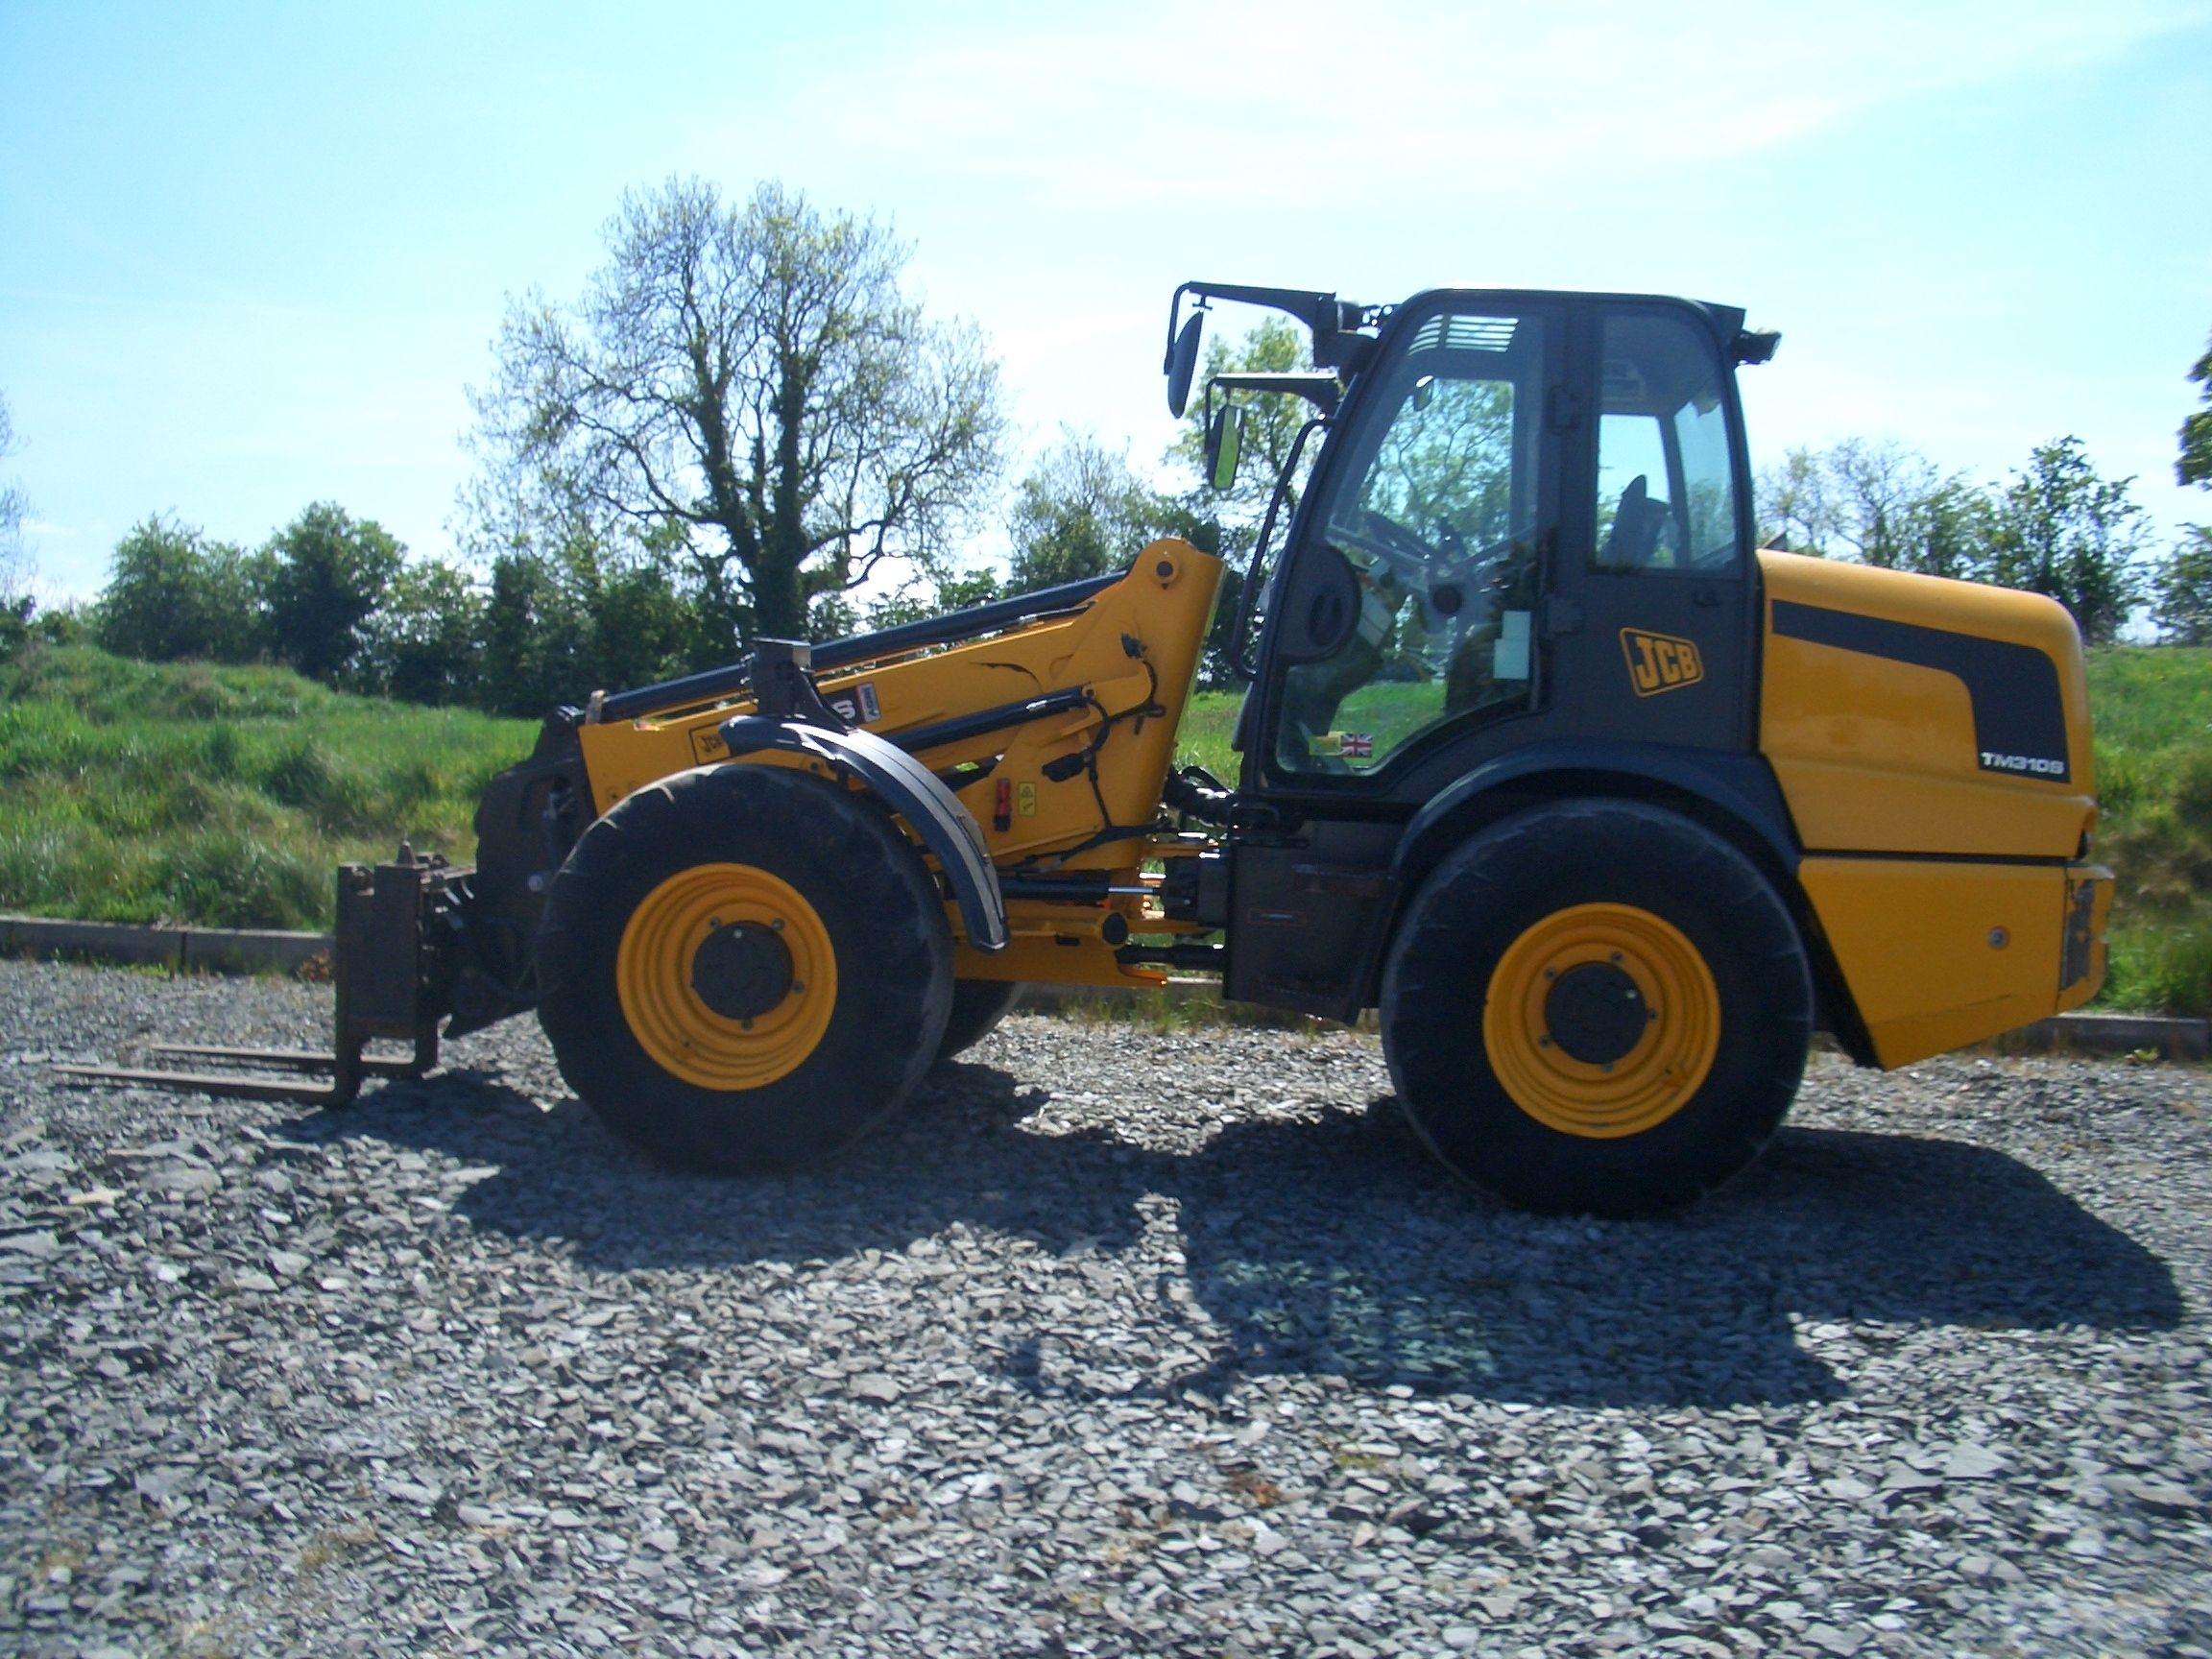 2008 JCB TM310S £40,000.00 PUH Ready, Smoothride, Air